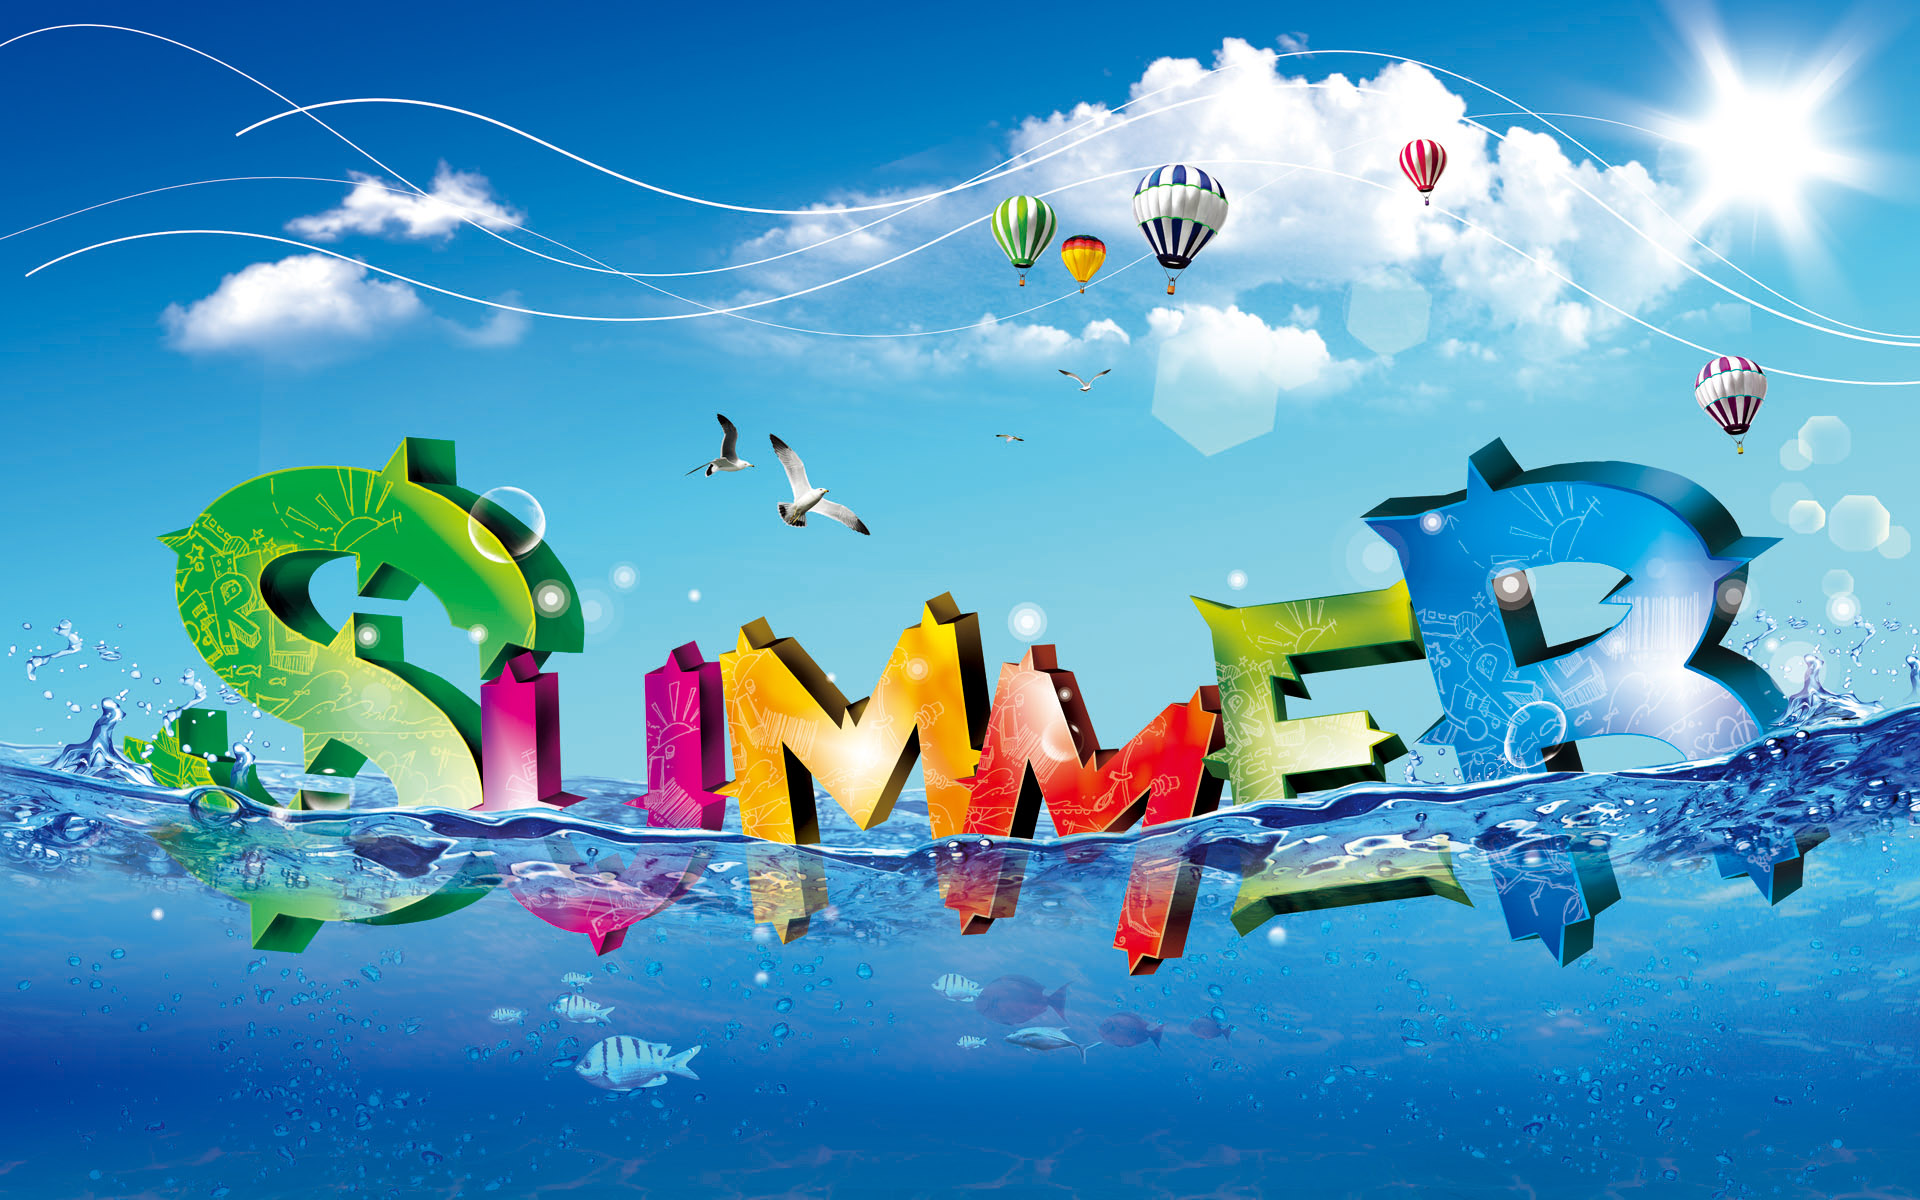 Free Summer Desktop Wallpaper Background Wallpapersafari